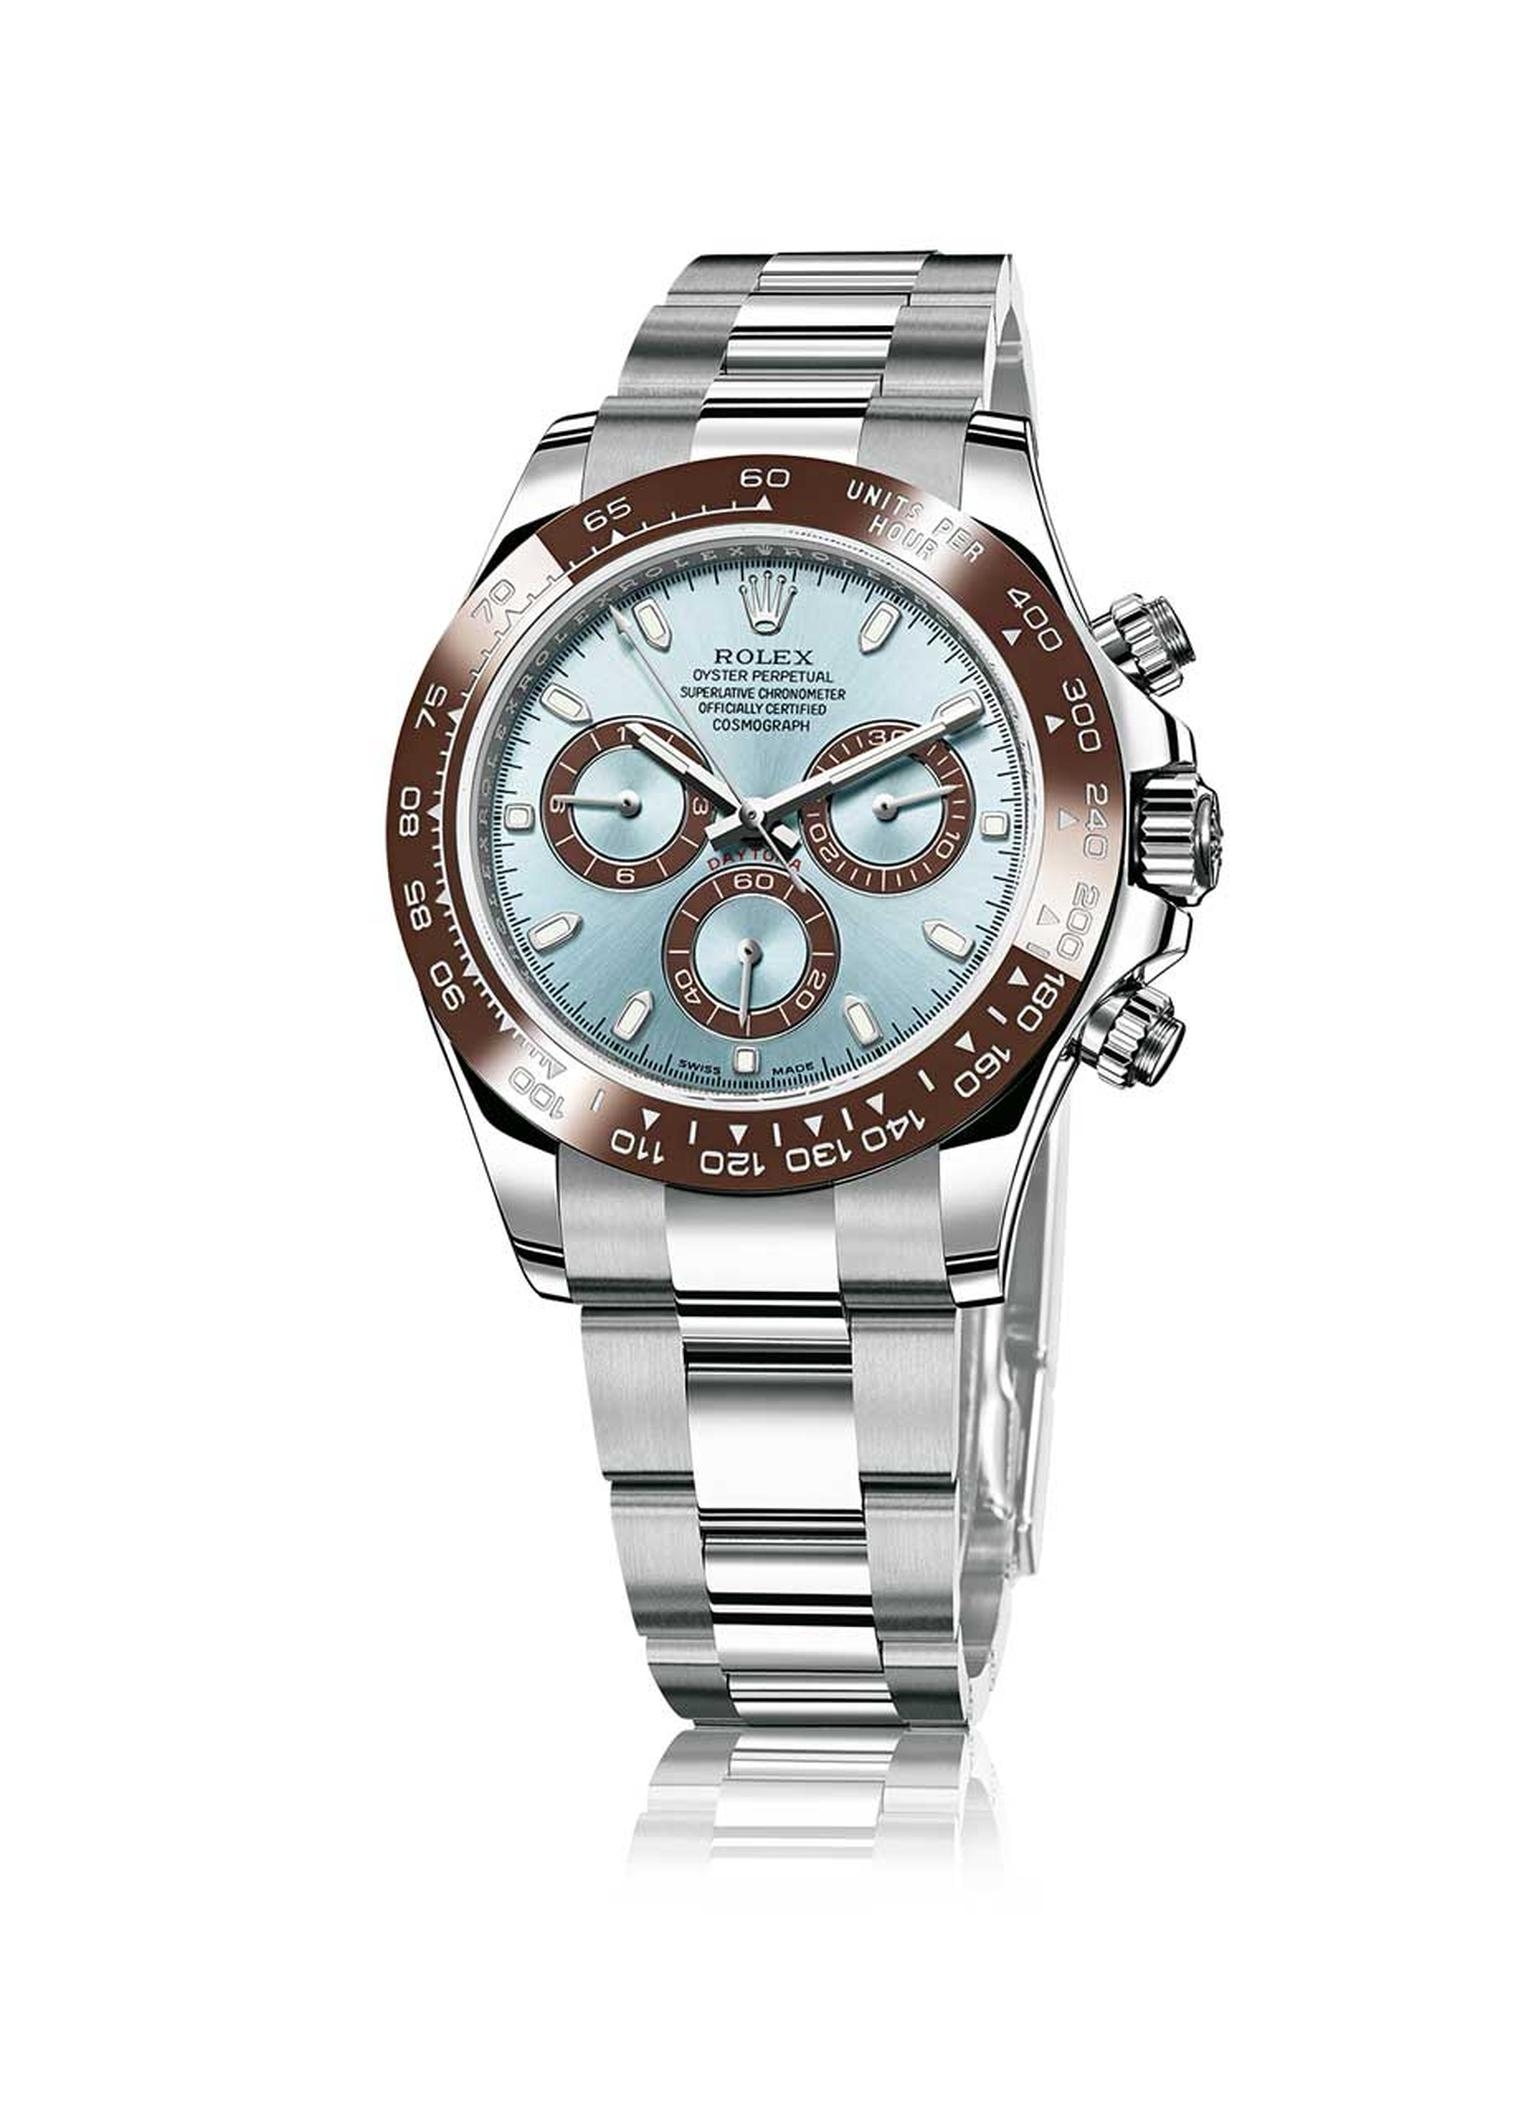 For many car-racing fans, the Rolex Daytona is the ultimate chronograph and racing watch. Launched in 1963 and named after the famous sand racetrack in Daytona, Florida, the Rolex Cosmograph Daytona watch was engineered for racing drivers.